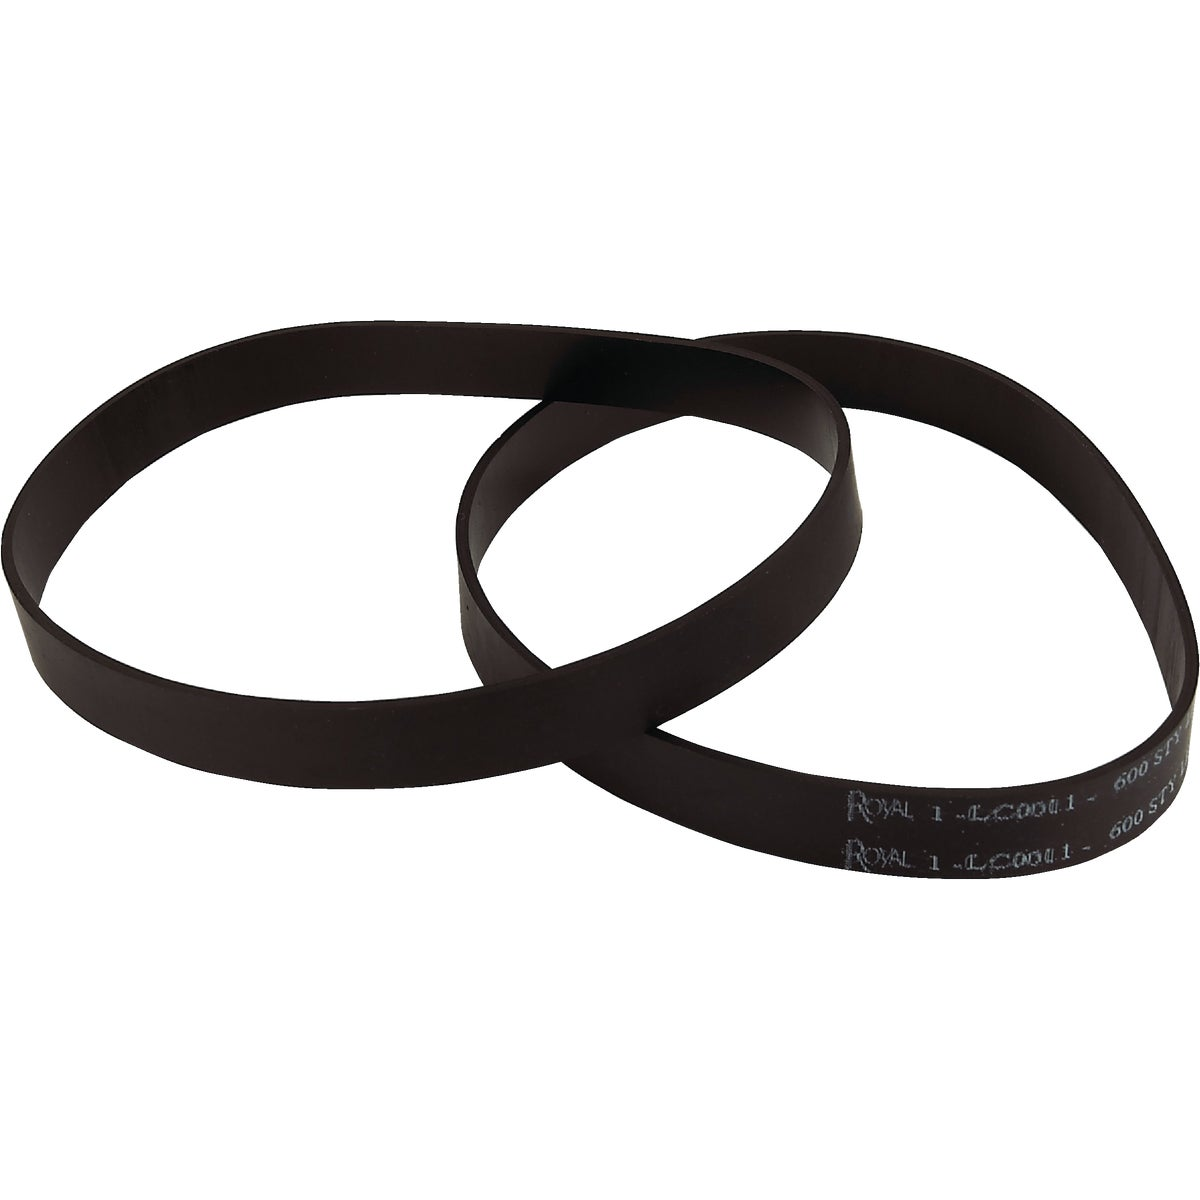 REPLACEMENT VACUUM BELT - 3-910355-001 by Royal Appliance